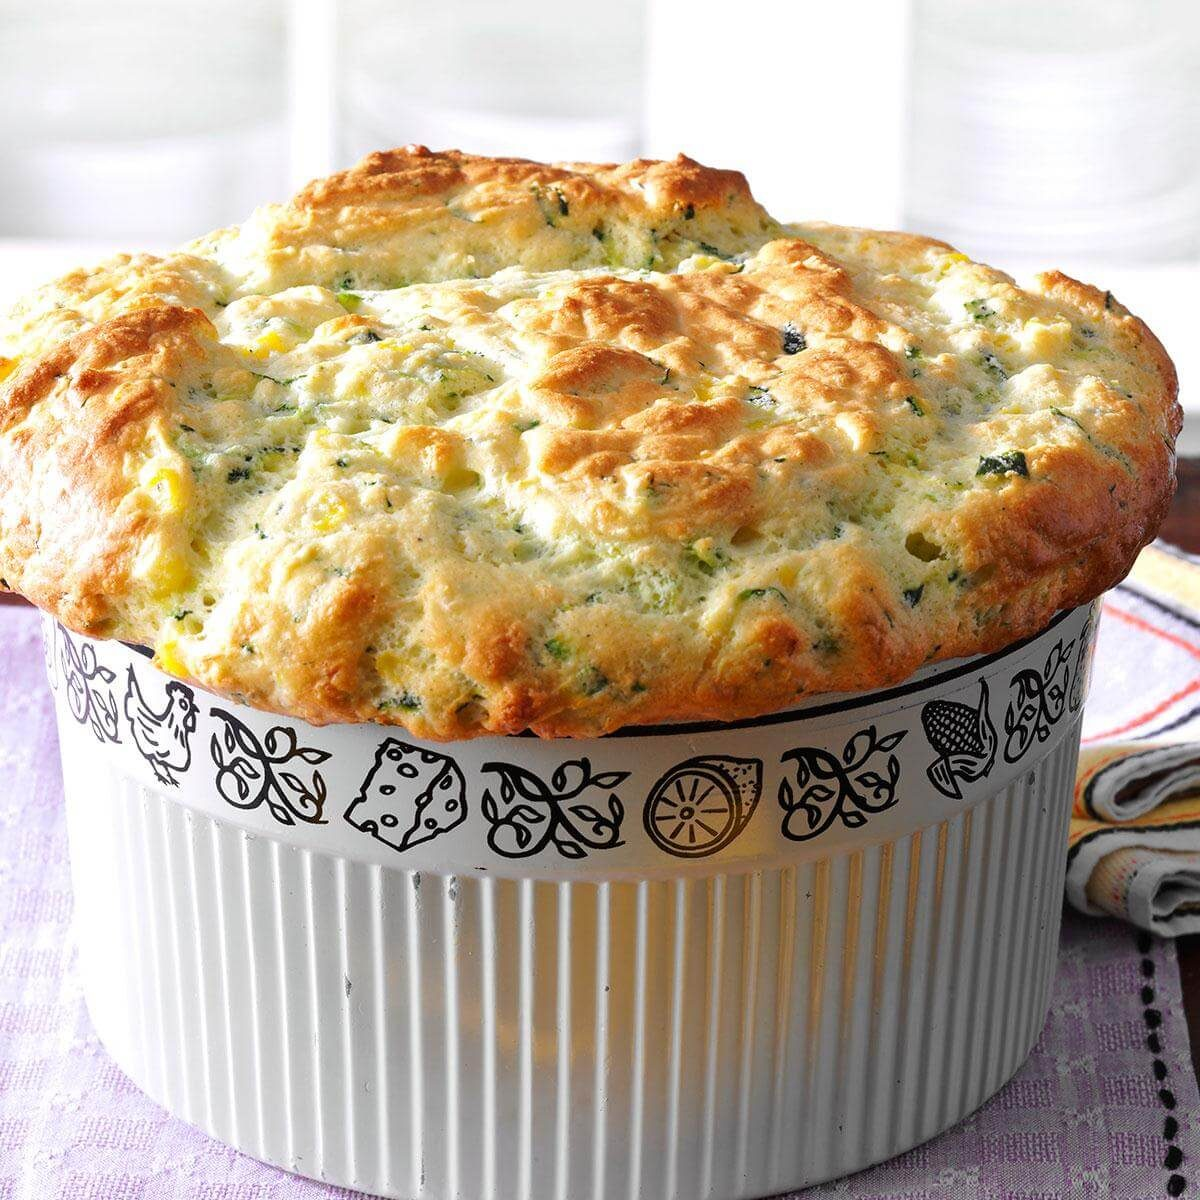 Souffle of zucchini. Cooking recipes 77